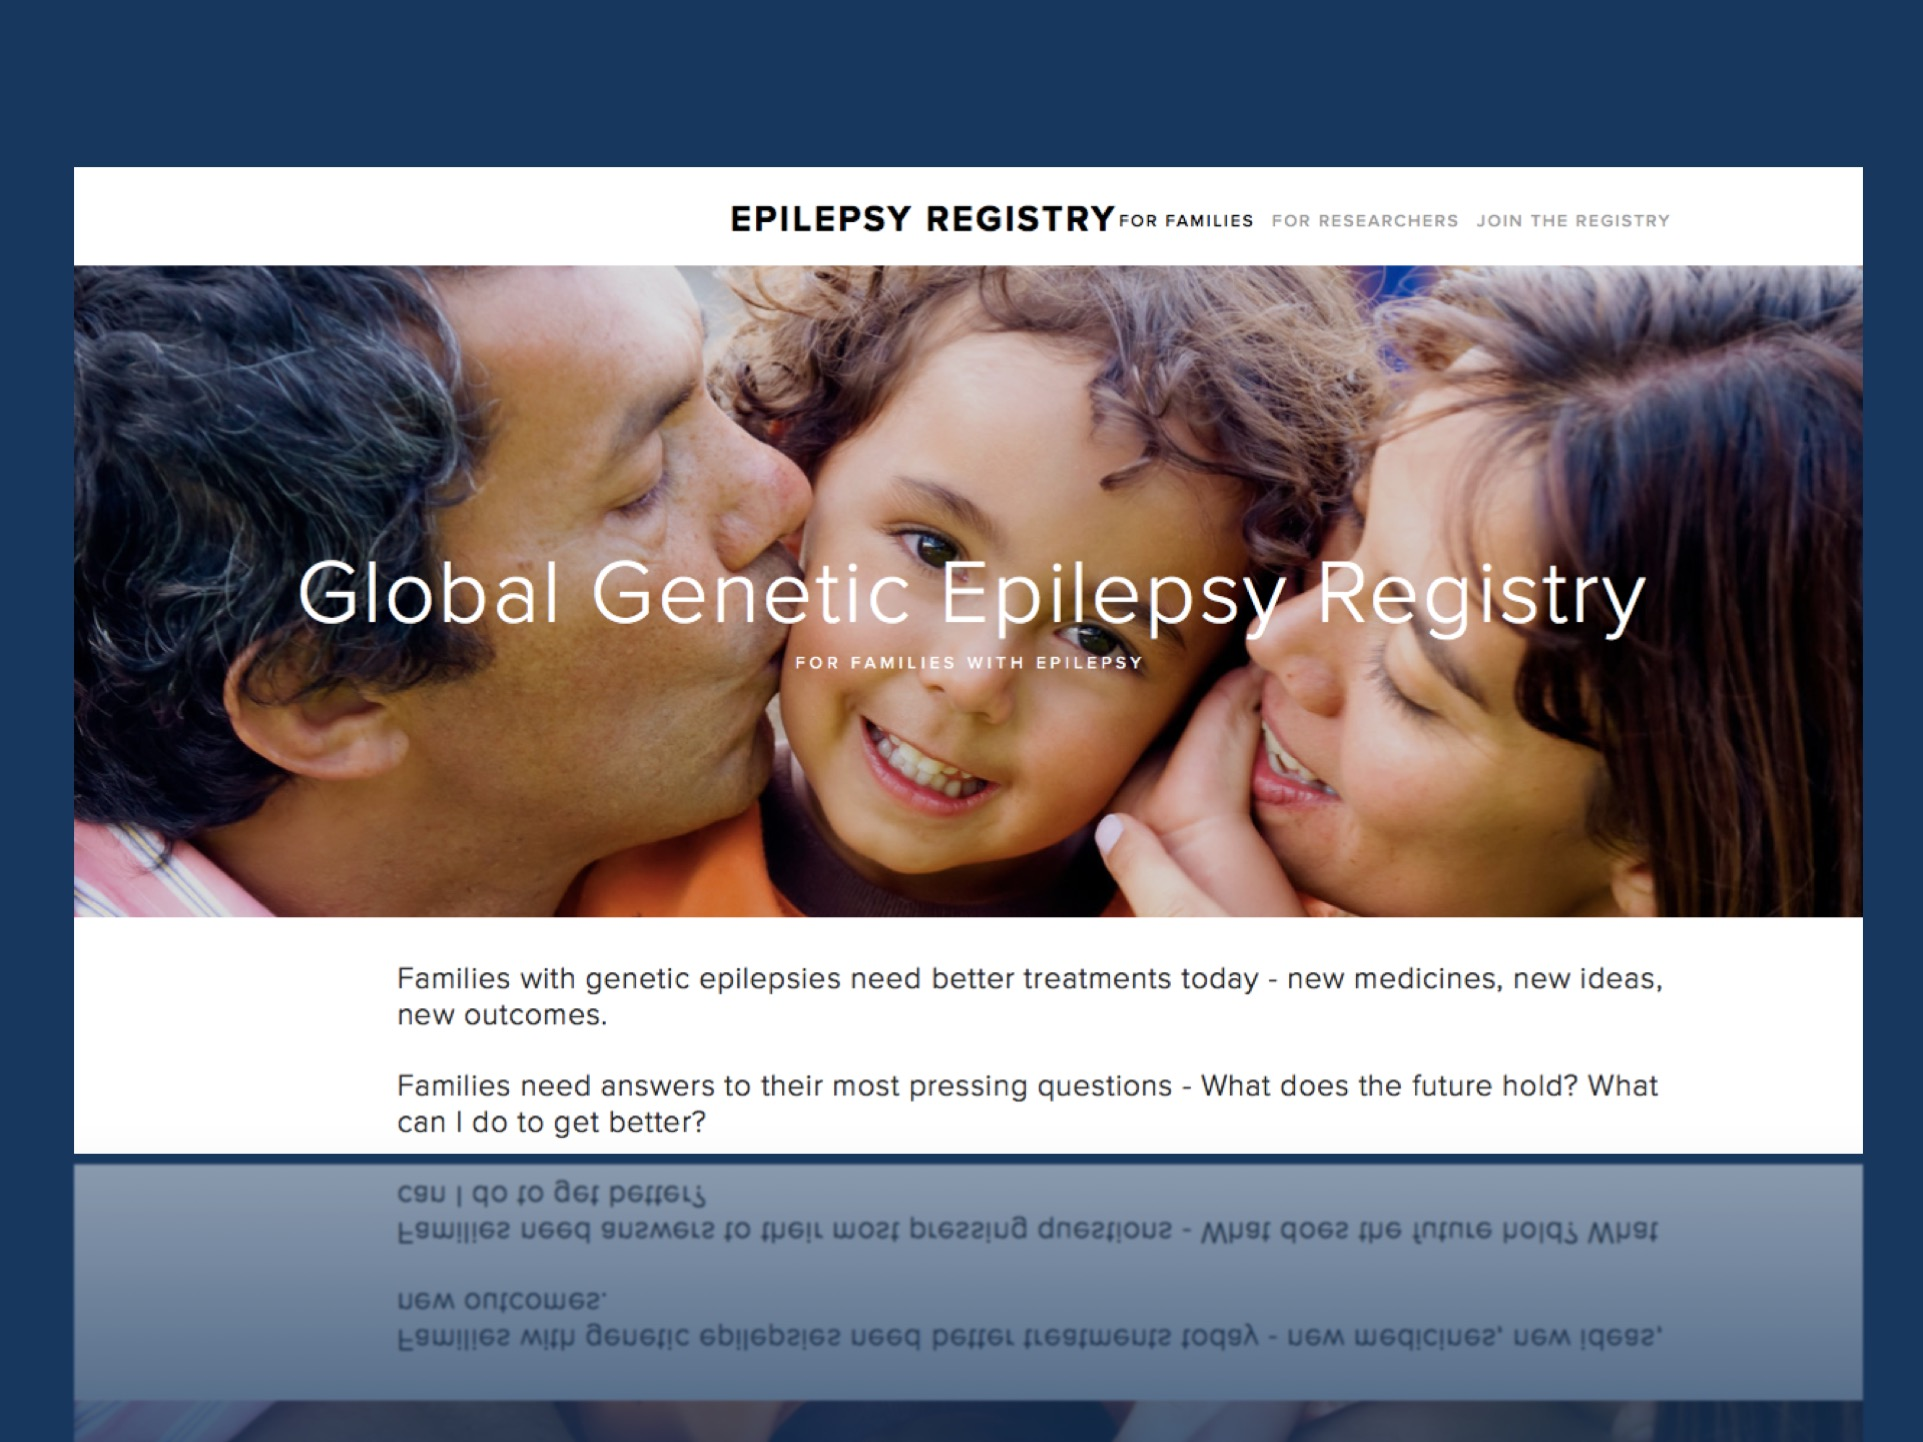 A screenshot of the Global Genetic Epilepsy Registry at http://www.geneticepilepsy.com.